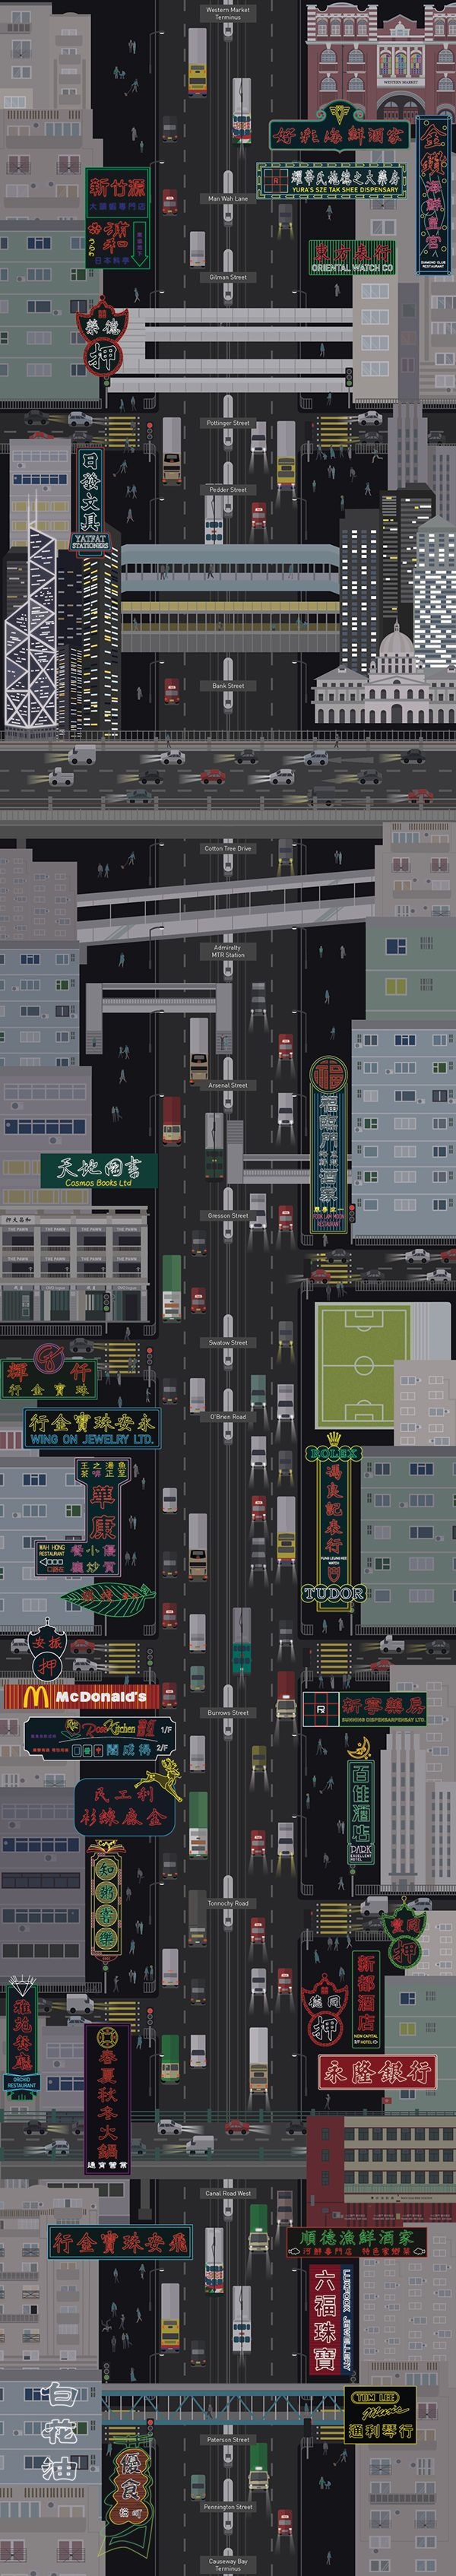 Kylie Lee & Kelly Ho. 霓虹 X 電車 Neon Signs x Tram. 2014